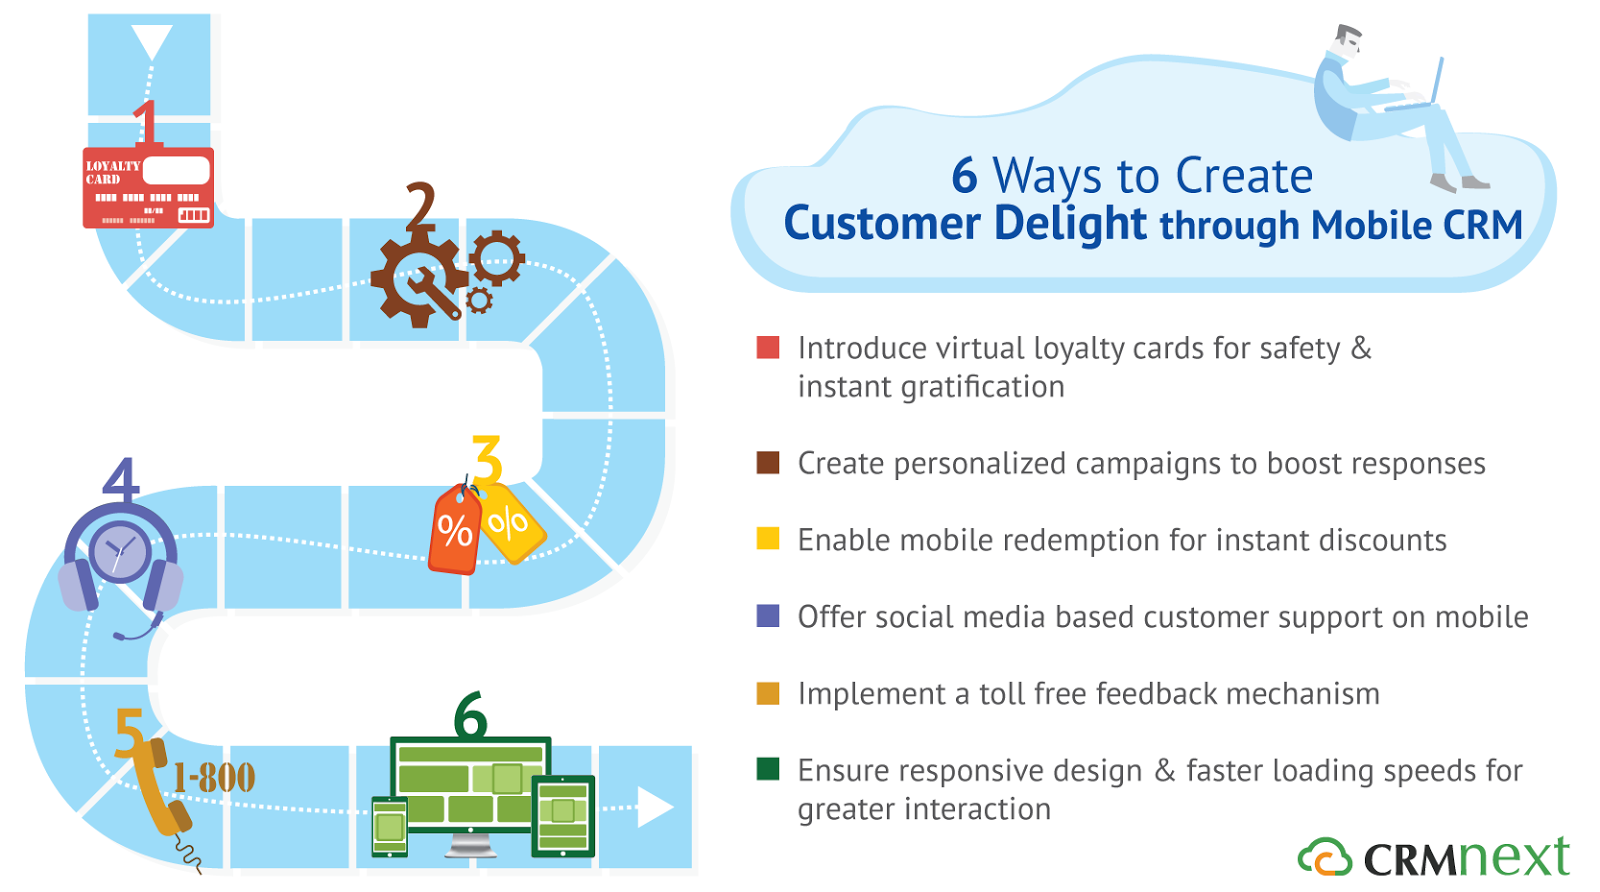 6 Ways to Create Customer Delight Through Mobile CRM